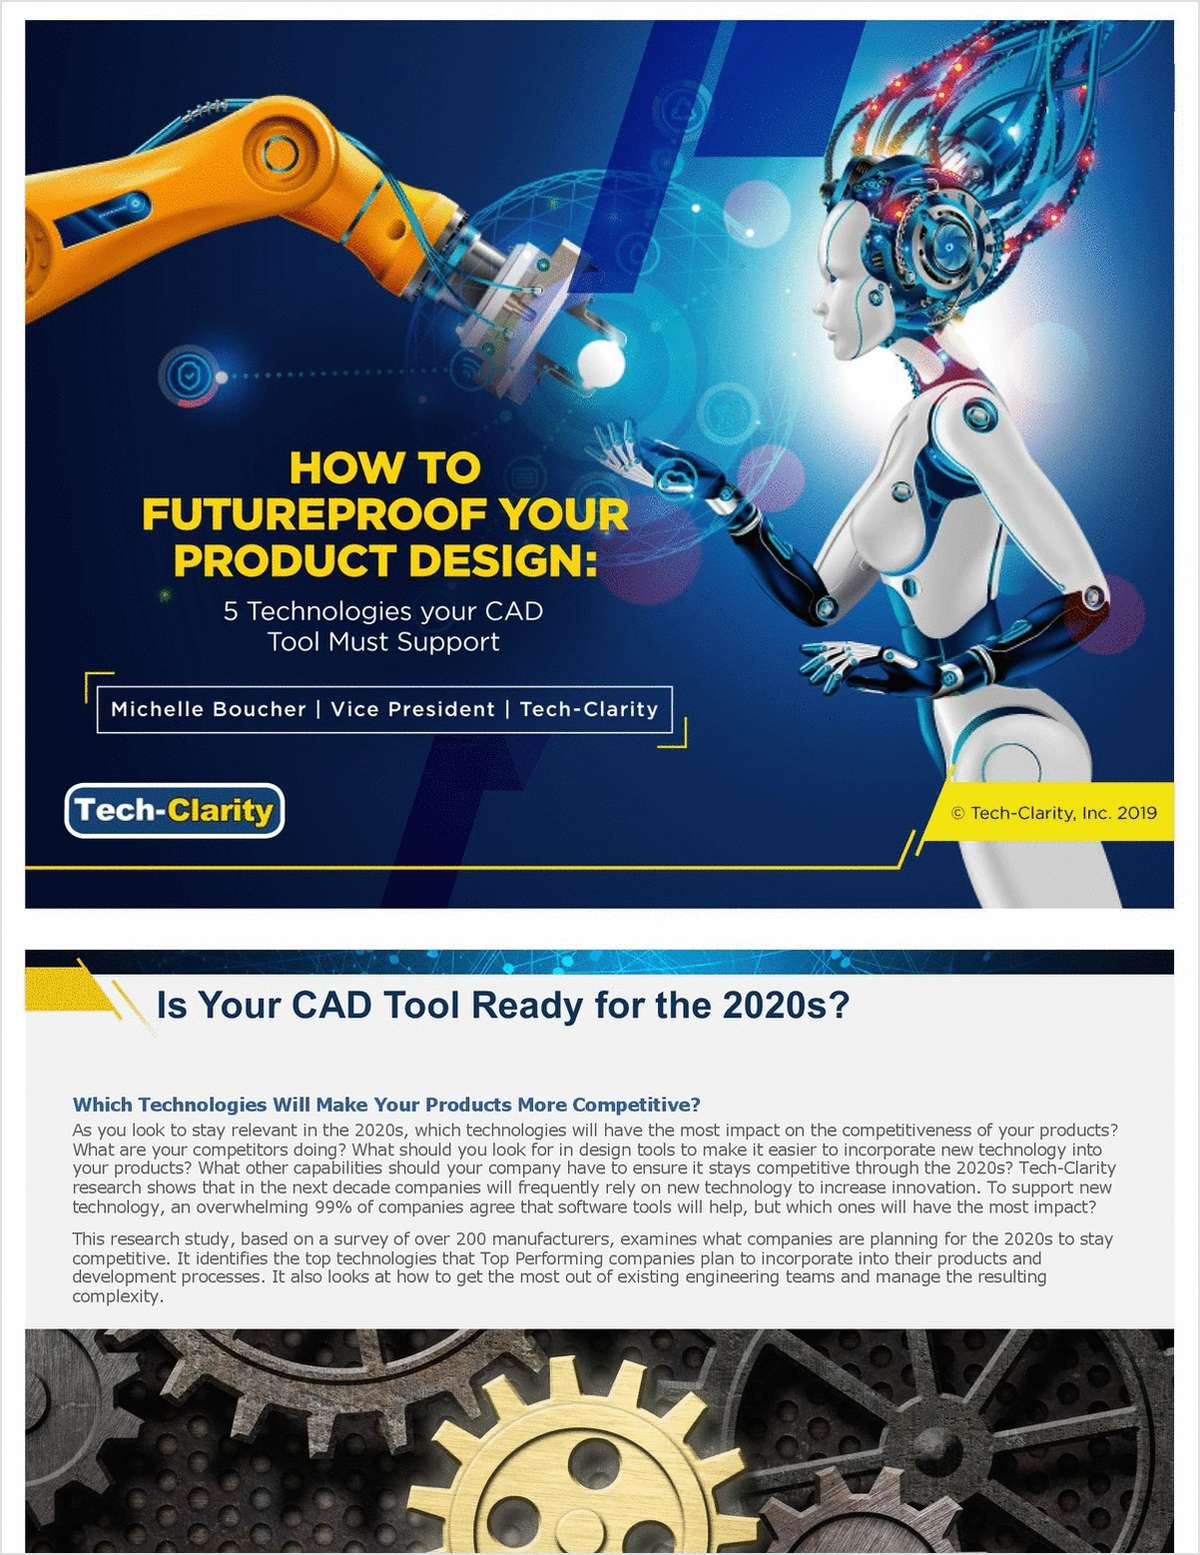 How to Futureproof Your Product Design: 5 Technologies your CAD Tool Must Support